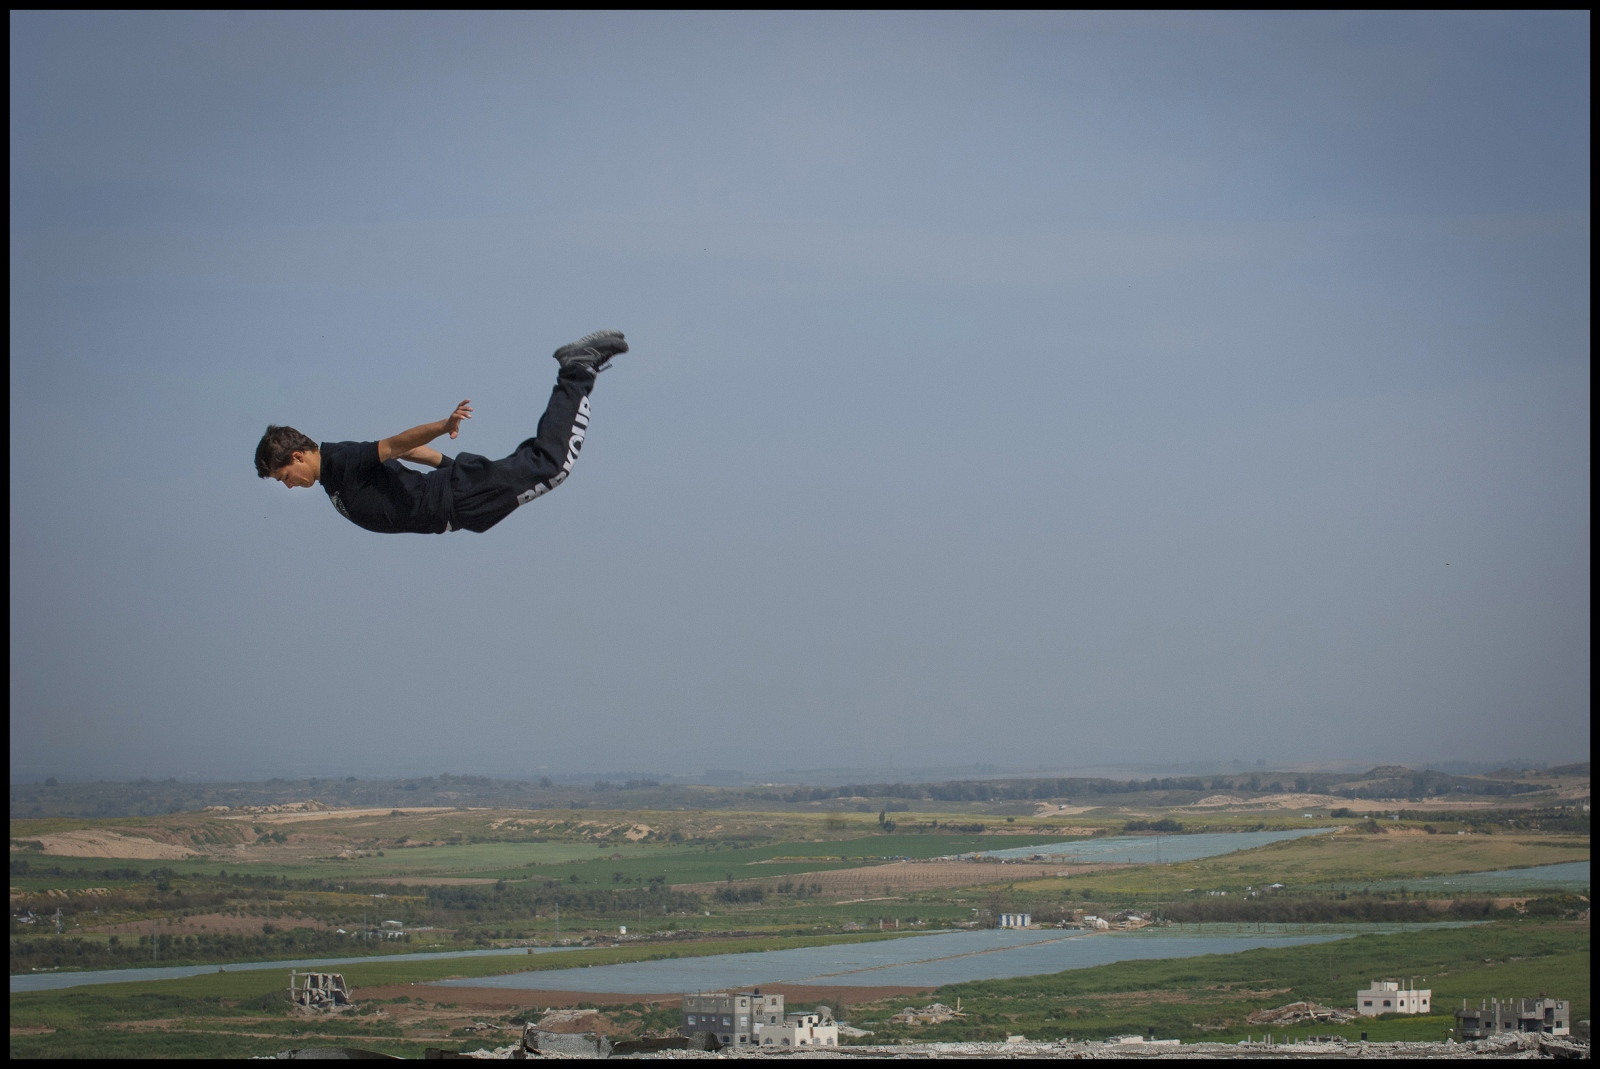 18 year old Fahed Dawood is airbourne over the Gaza Strip, Beit Hanoun, Northern Gaza Strip.  Fahed is a member of the Gazan Parkour team '3 Run Gaza'.